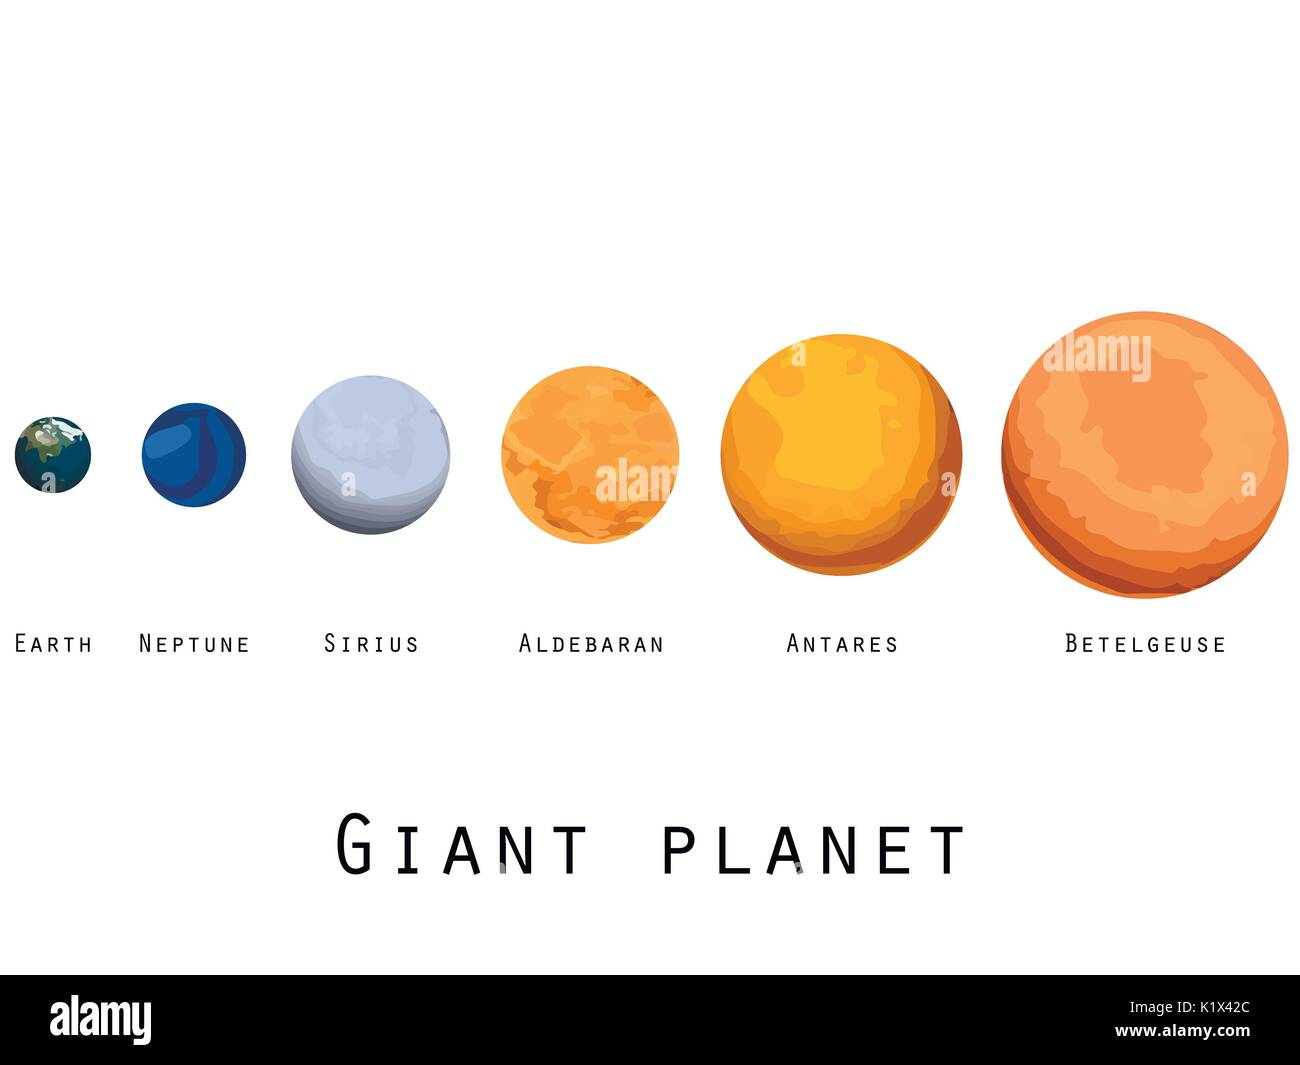 Giant planet. Planets and stars of the universe. Major planets. Stock Vector